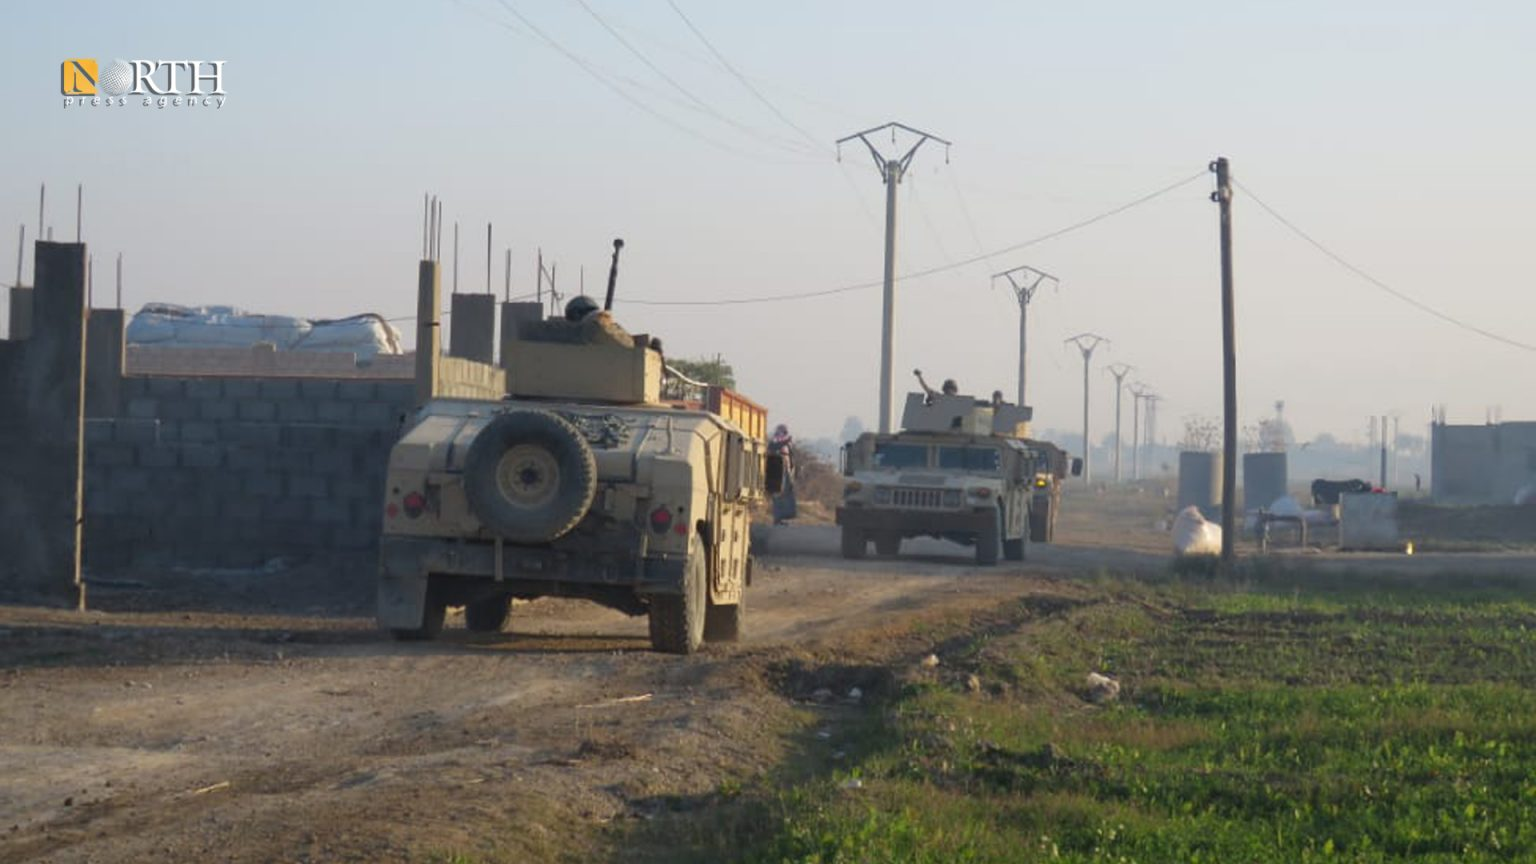 Military patrol of the SDF during the arrest of a wanted – North Press/archive